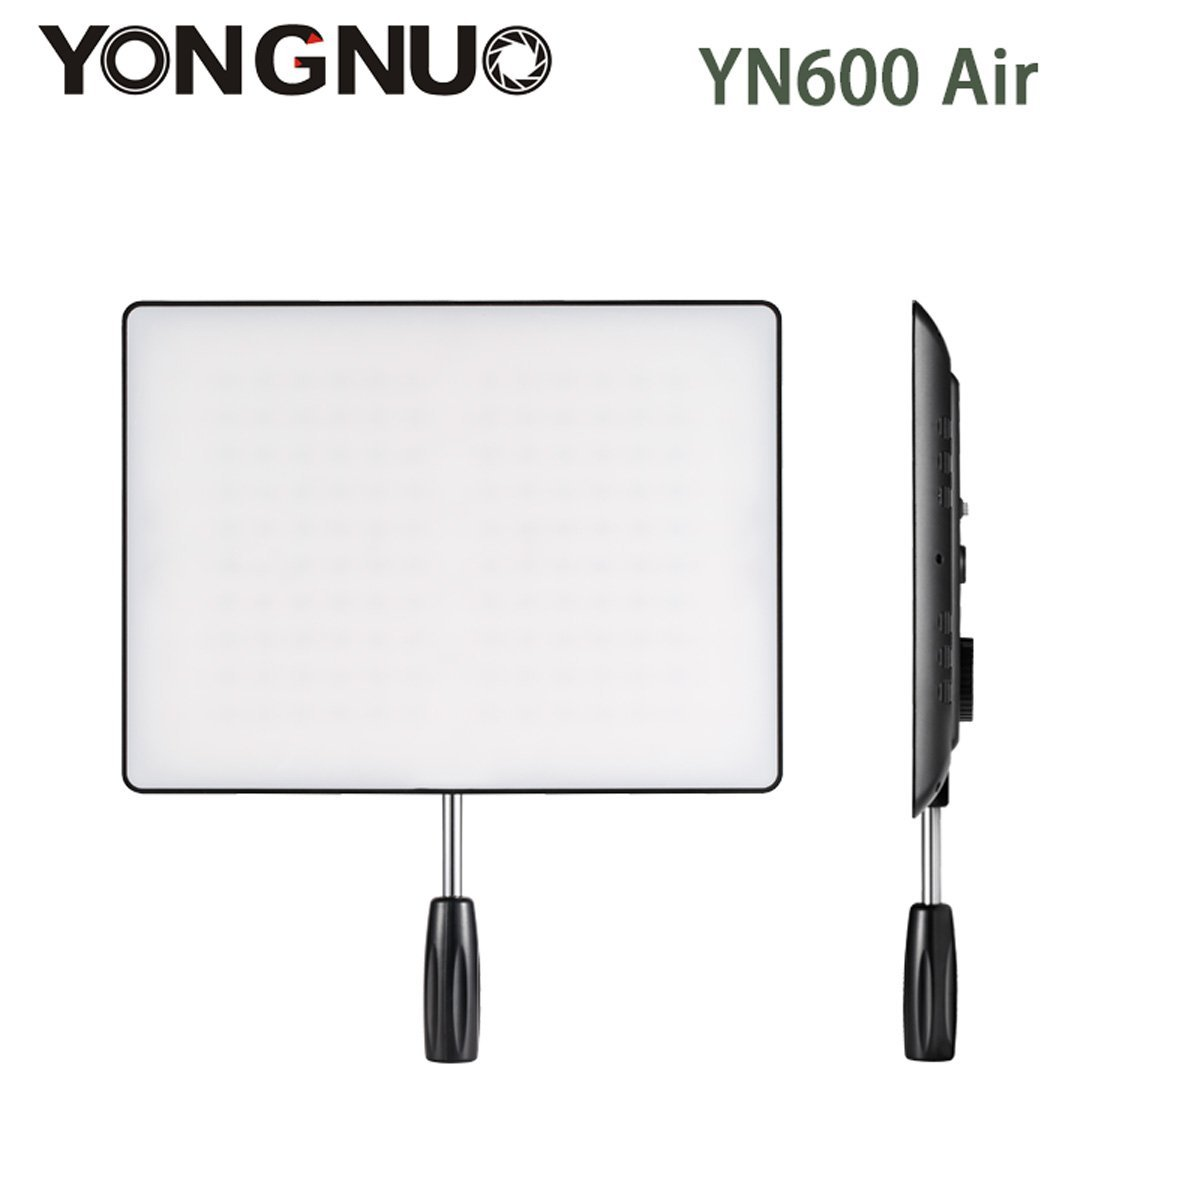 YONGNUO YN600 Air Ultra Thin LED Camera Video Light 3200K-5500K for Canon Nikon Pentax Olympas Samsung DSLR Camcorder